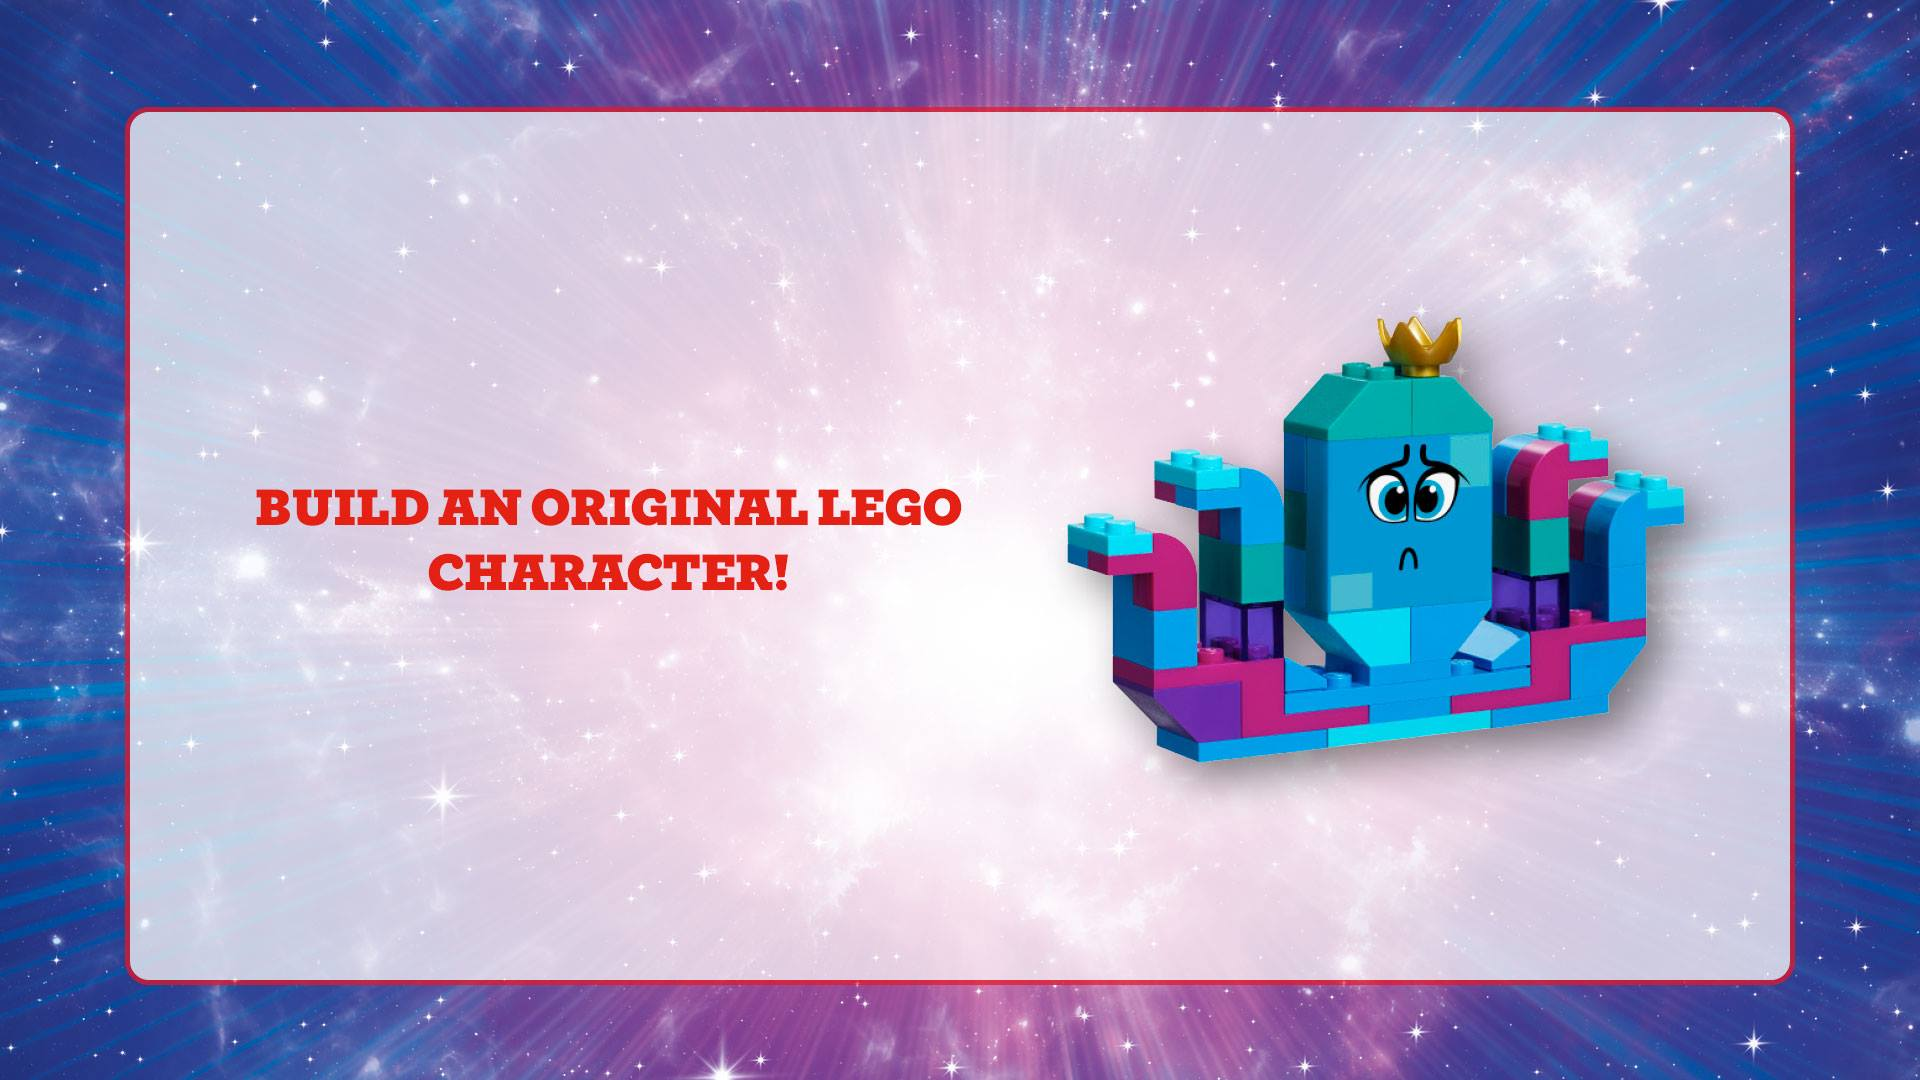 build an original lego character